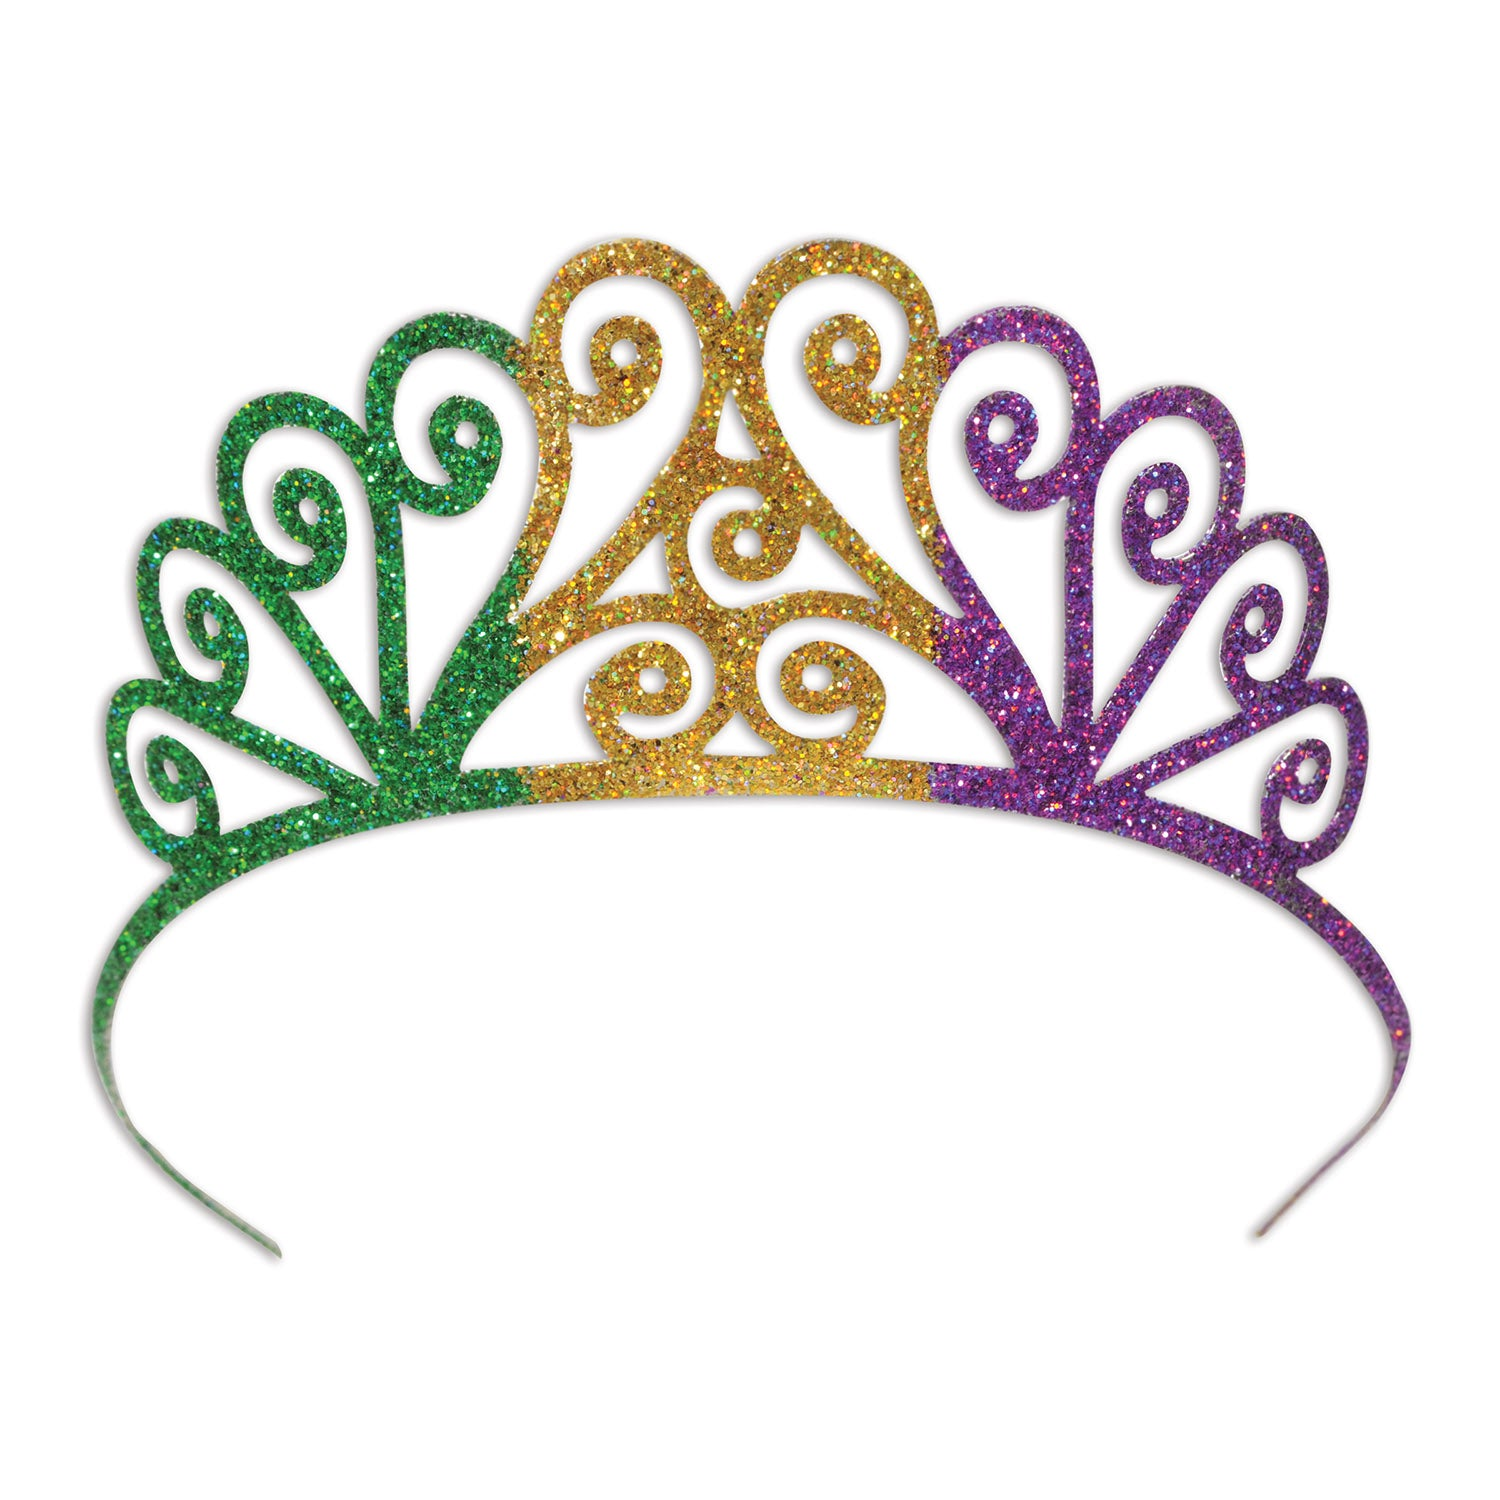 Glittered Metal Mardi Gras Tiara by Beistle - Mardi Gras Theme Decorations